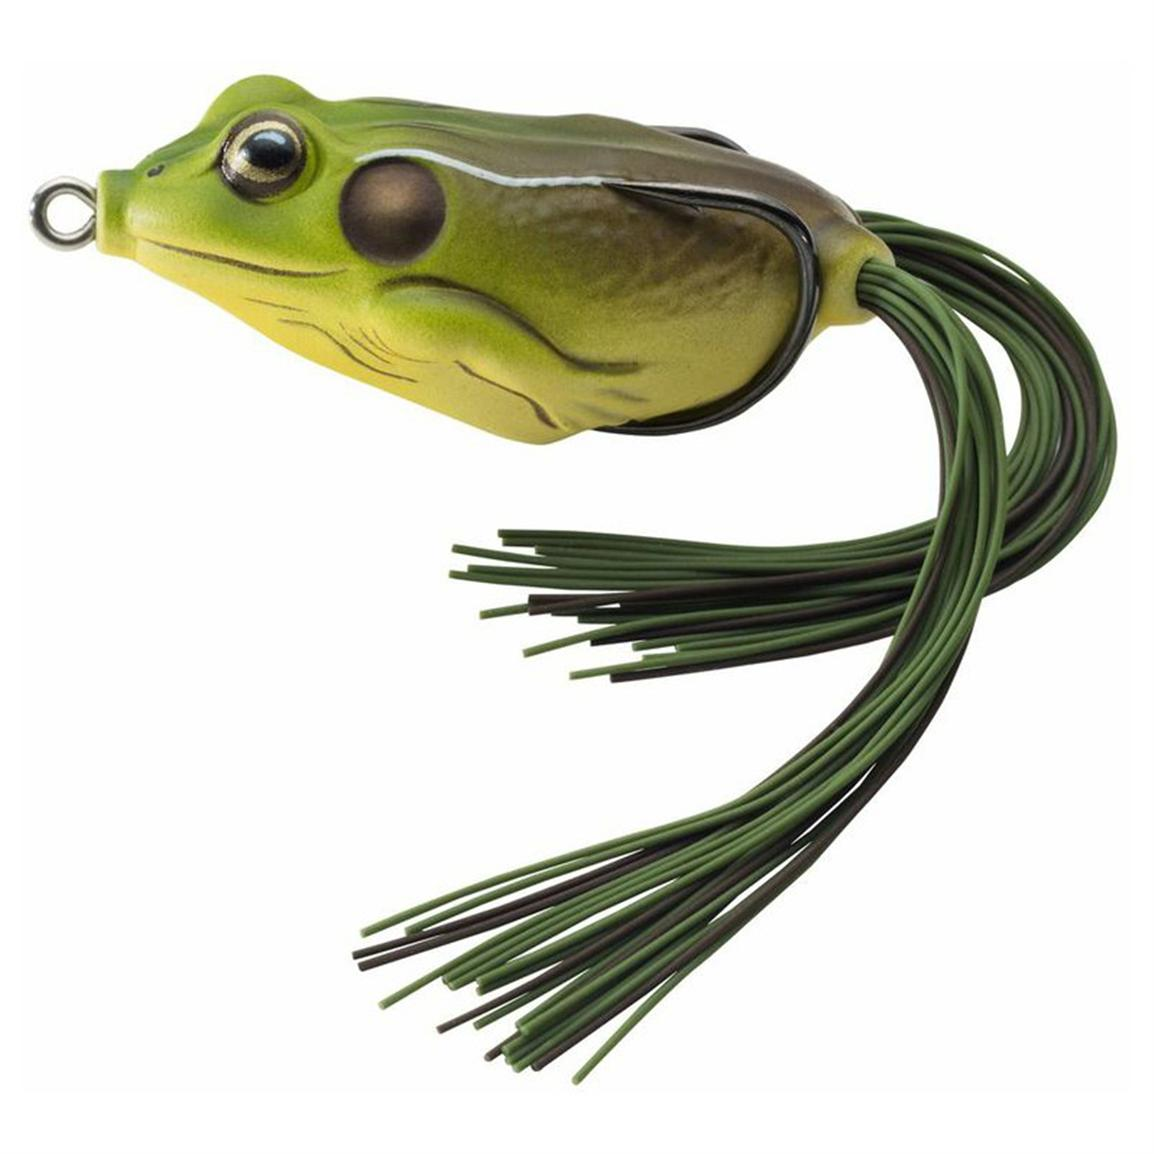 Live target 2 5 8 frog hollow body surface lure 213392 for Frog lures for bass fishing